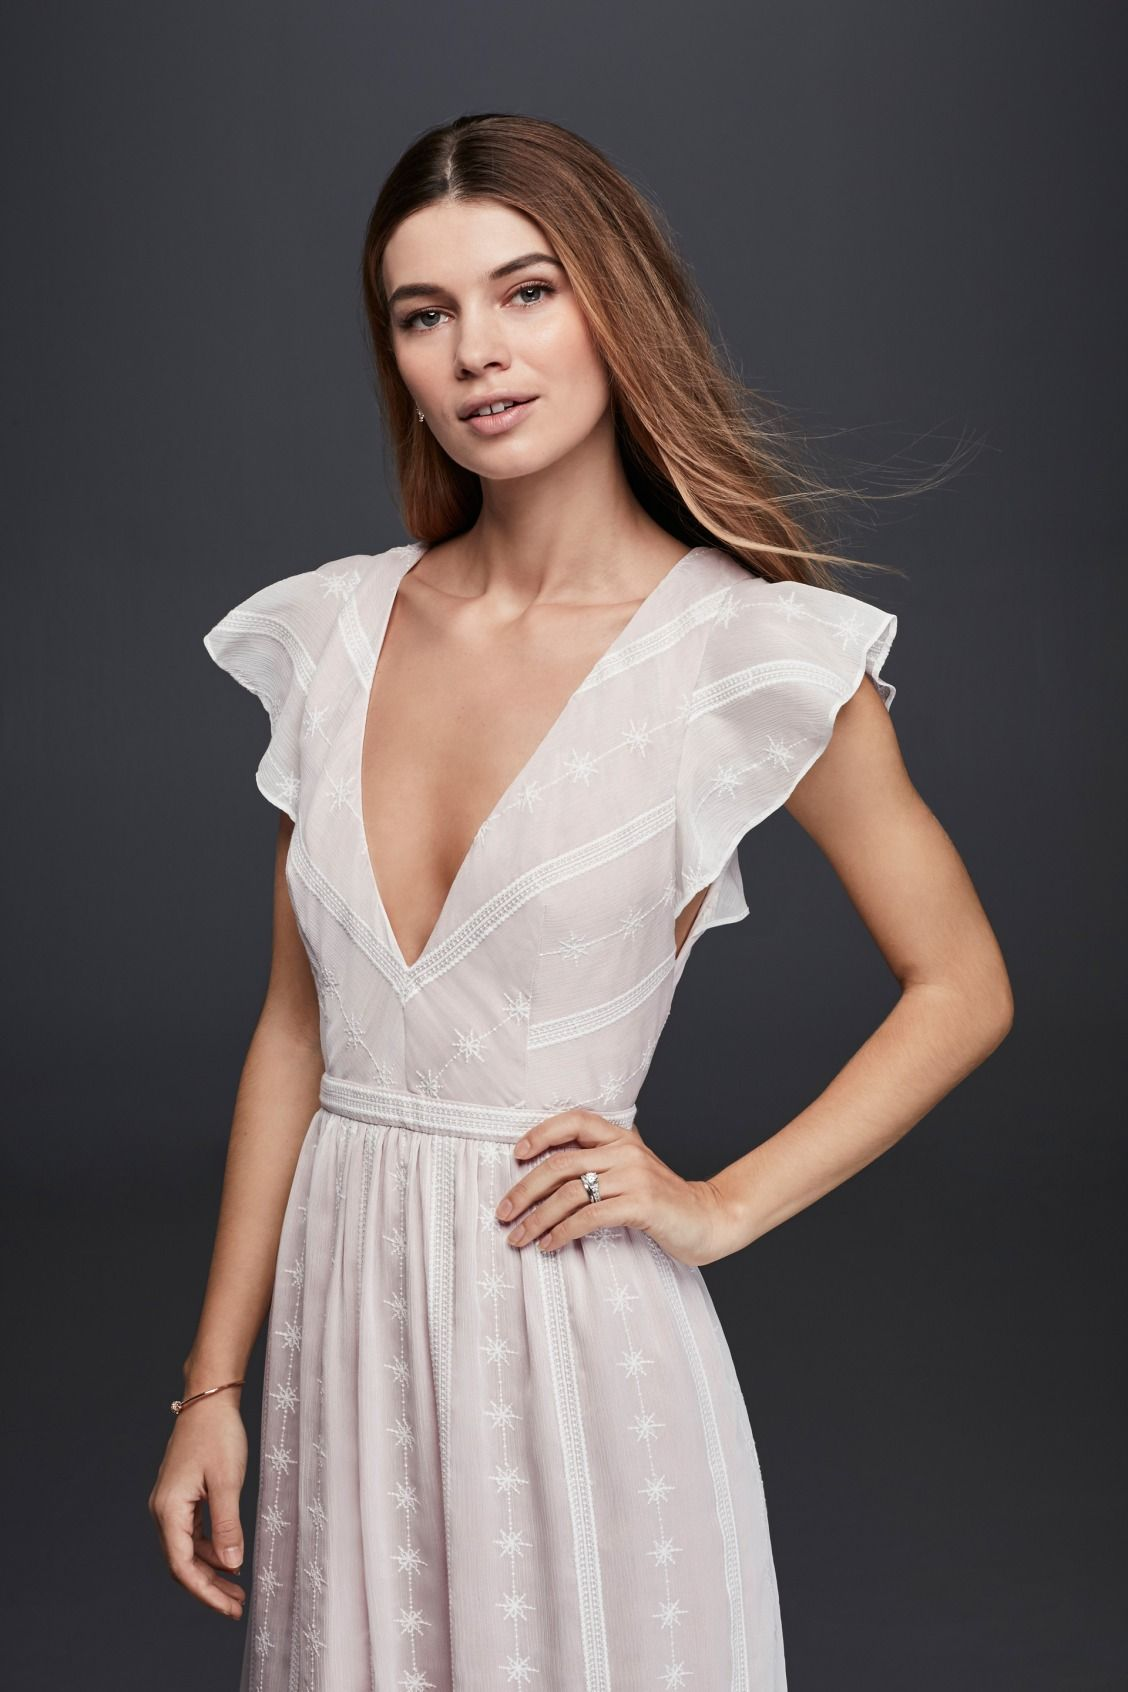 Embroidered Chiffon Dress with Plunging Neckline Dresses